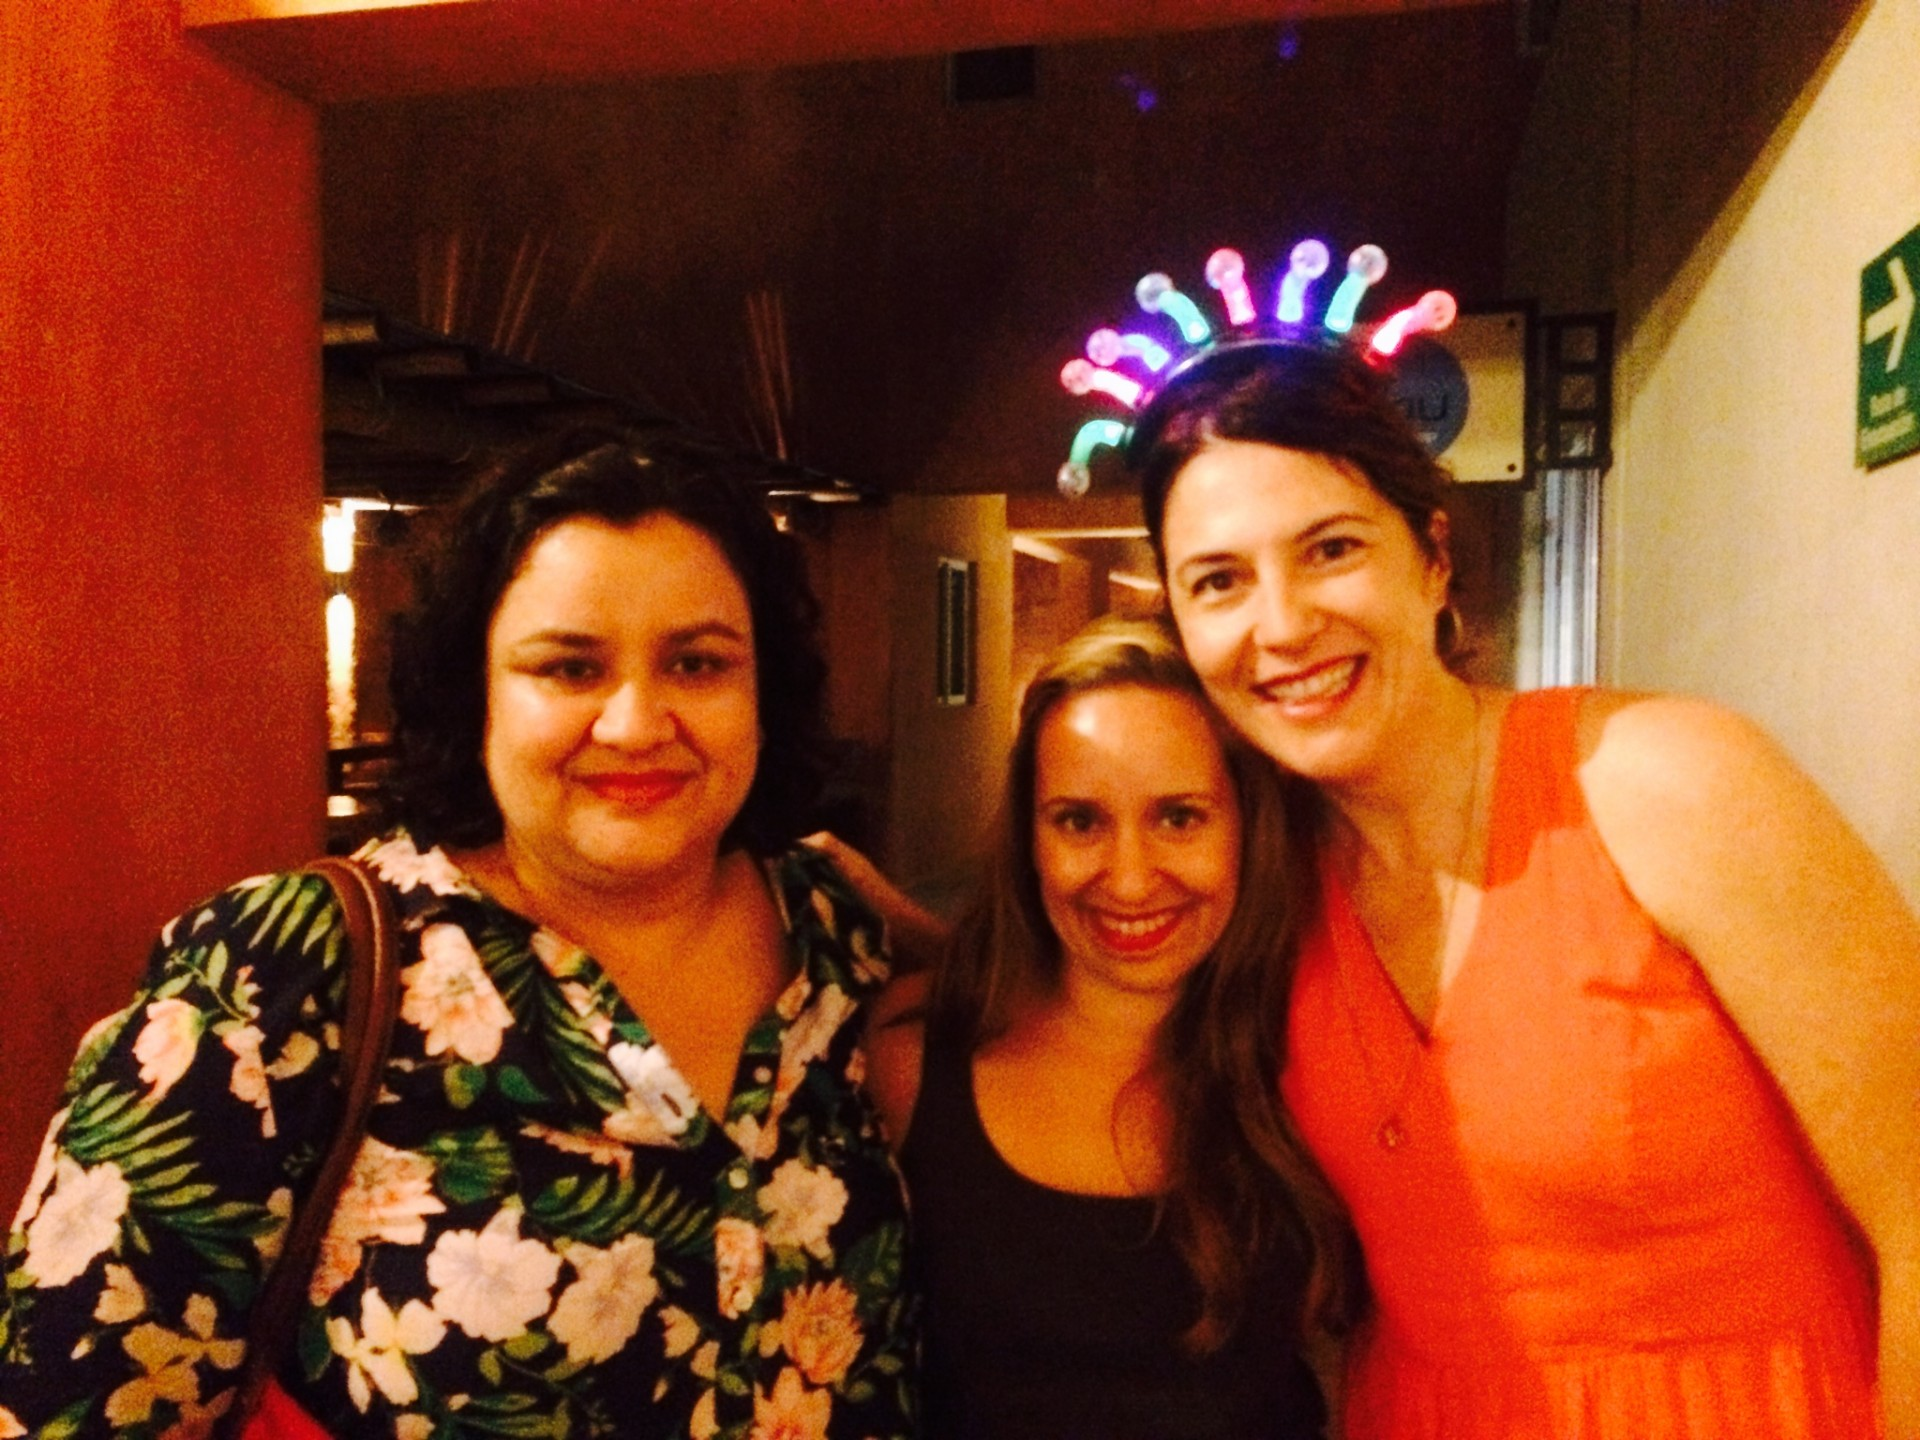 Meredith of Niparajá, and Cris and Laura of EDF. Laura doesn't always wear an electric crown, but when she does, she kills it.